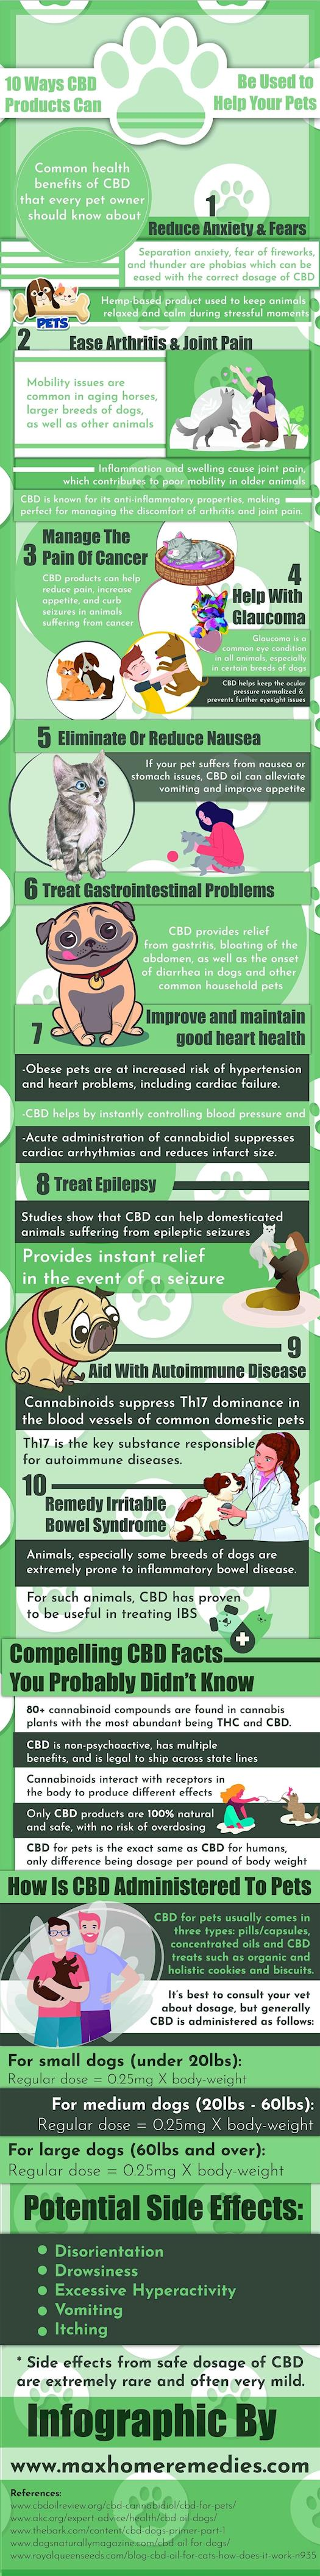 Health Benefits of CBD for Pets